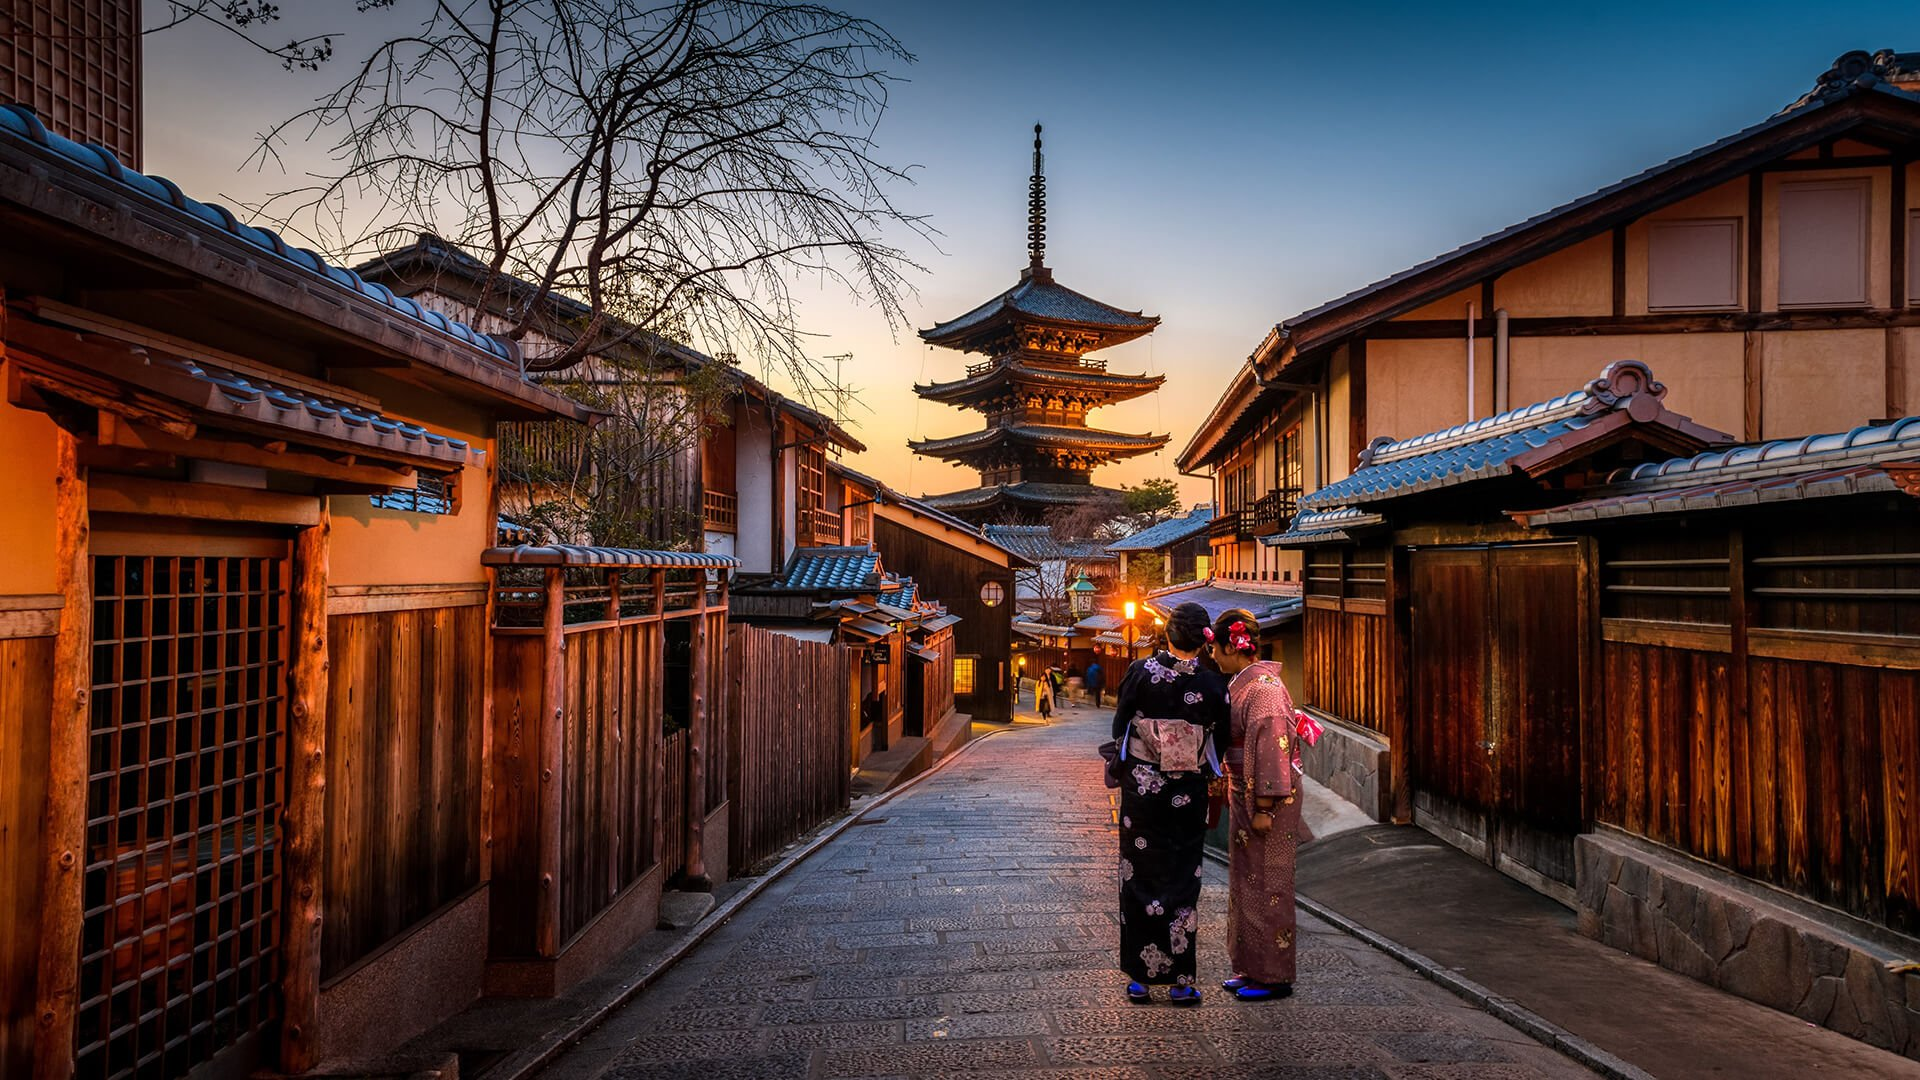 Kyoto, one of the most impressive and beautiful places in Japan